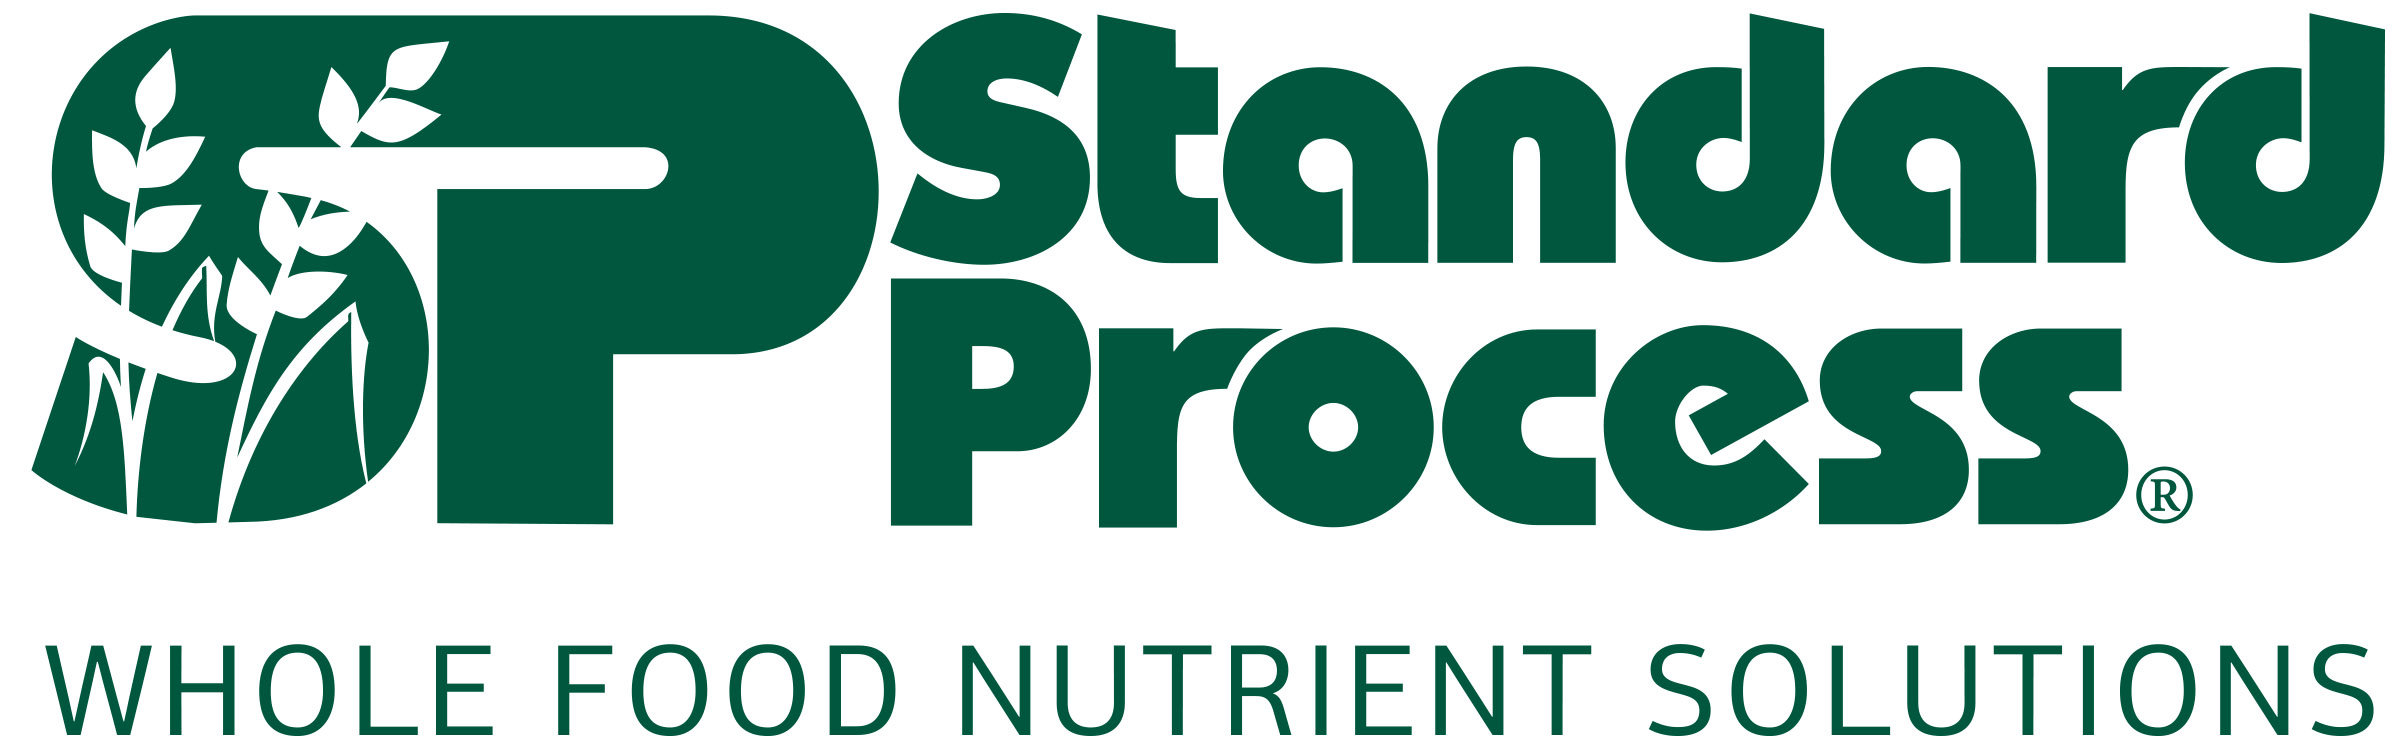 Standard Process Whole Food Nutrition